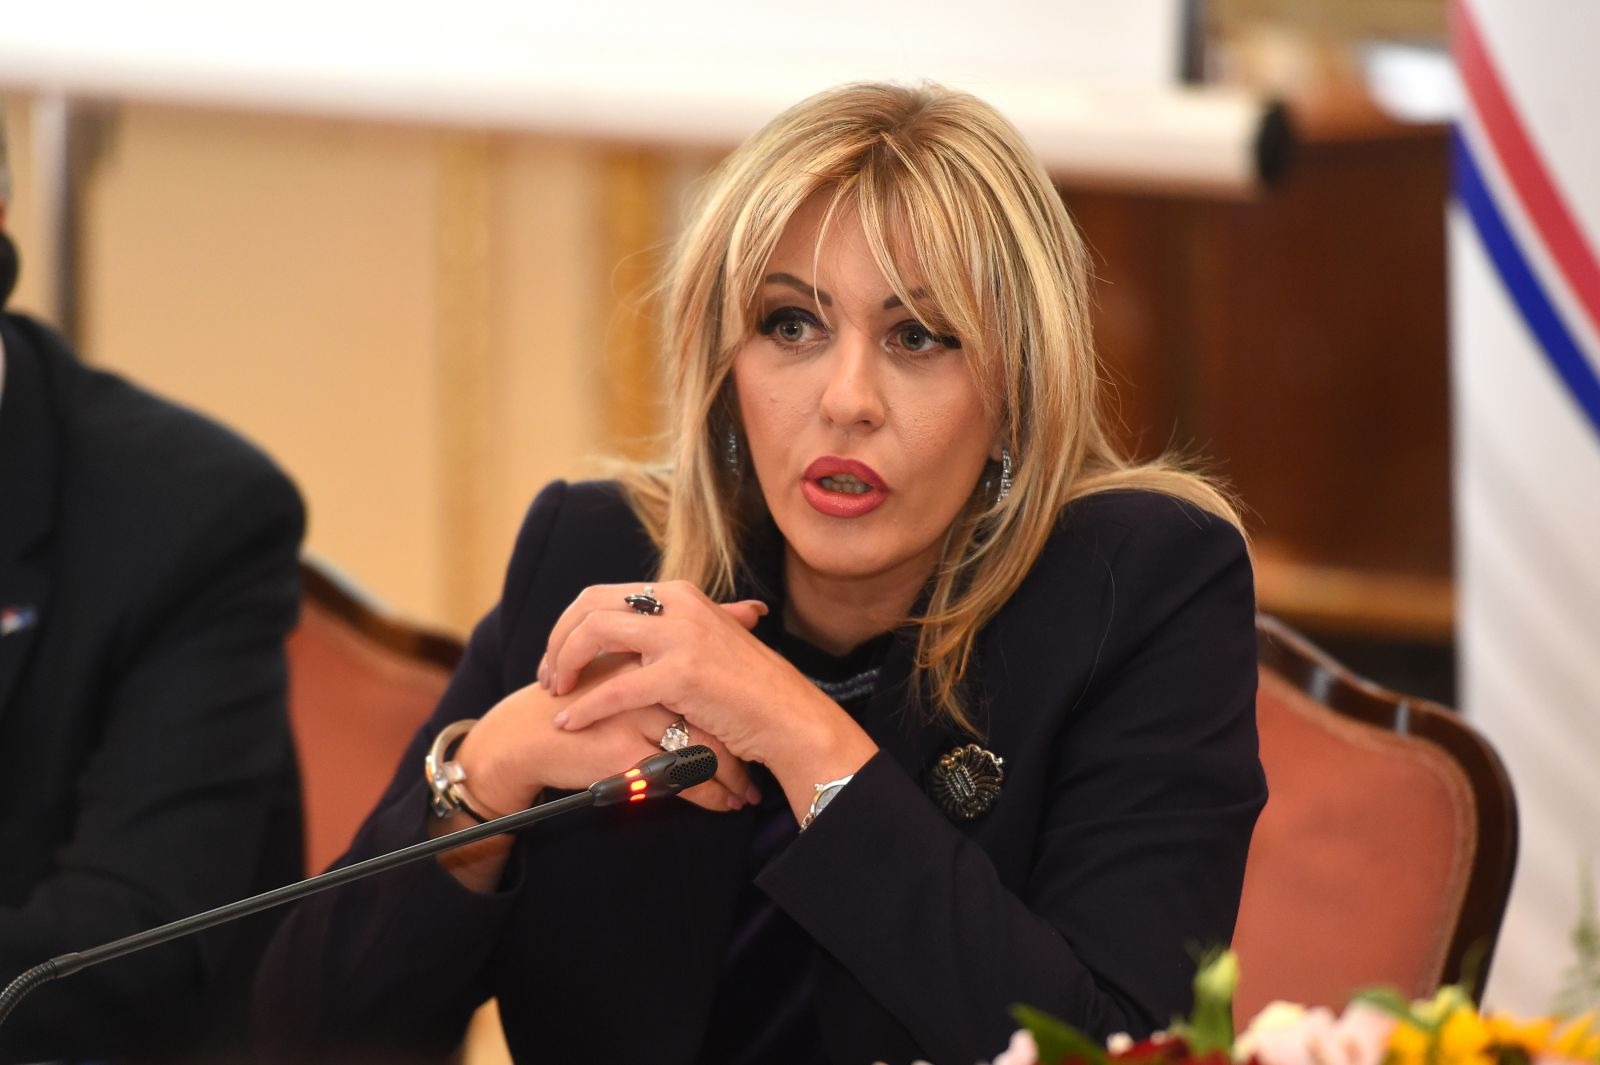 J. Joksimović: Serbia is not feigning European integration, reforms are real